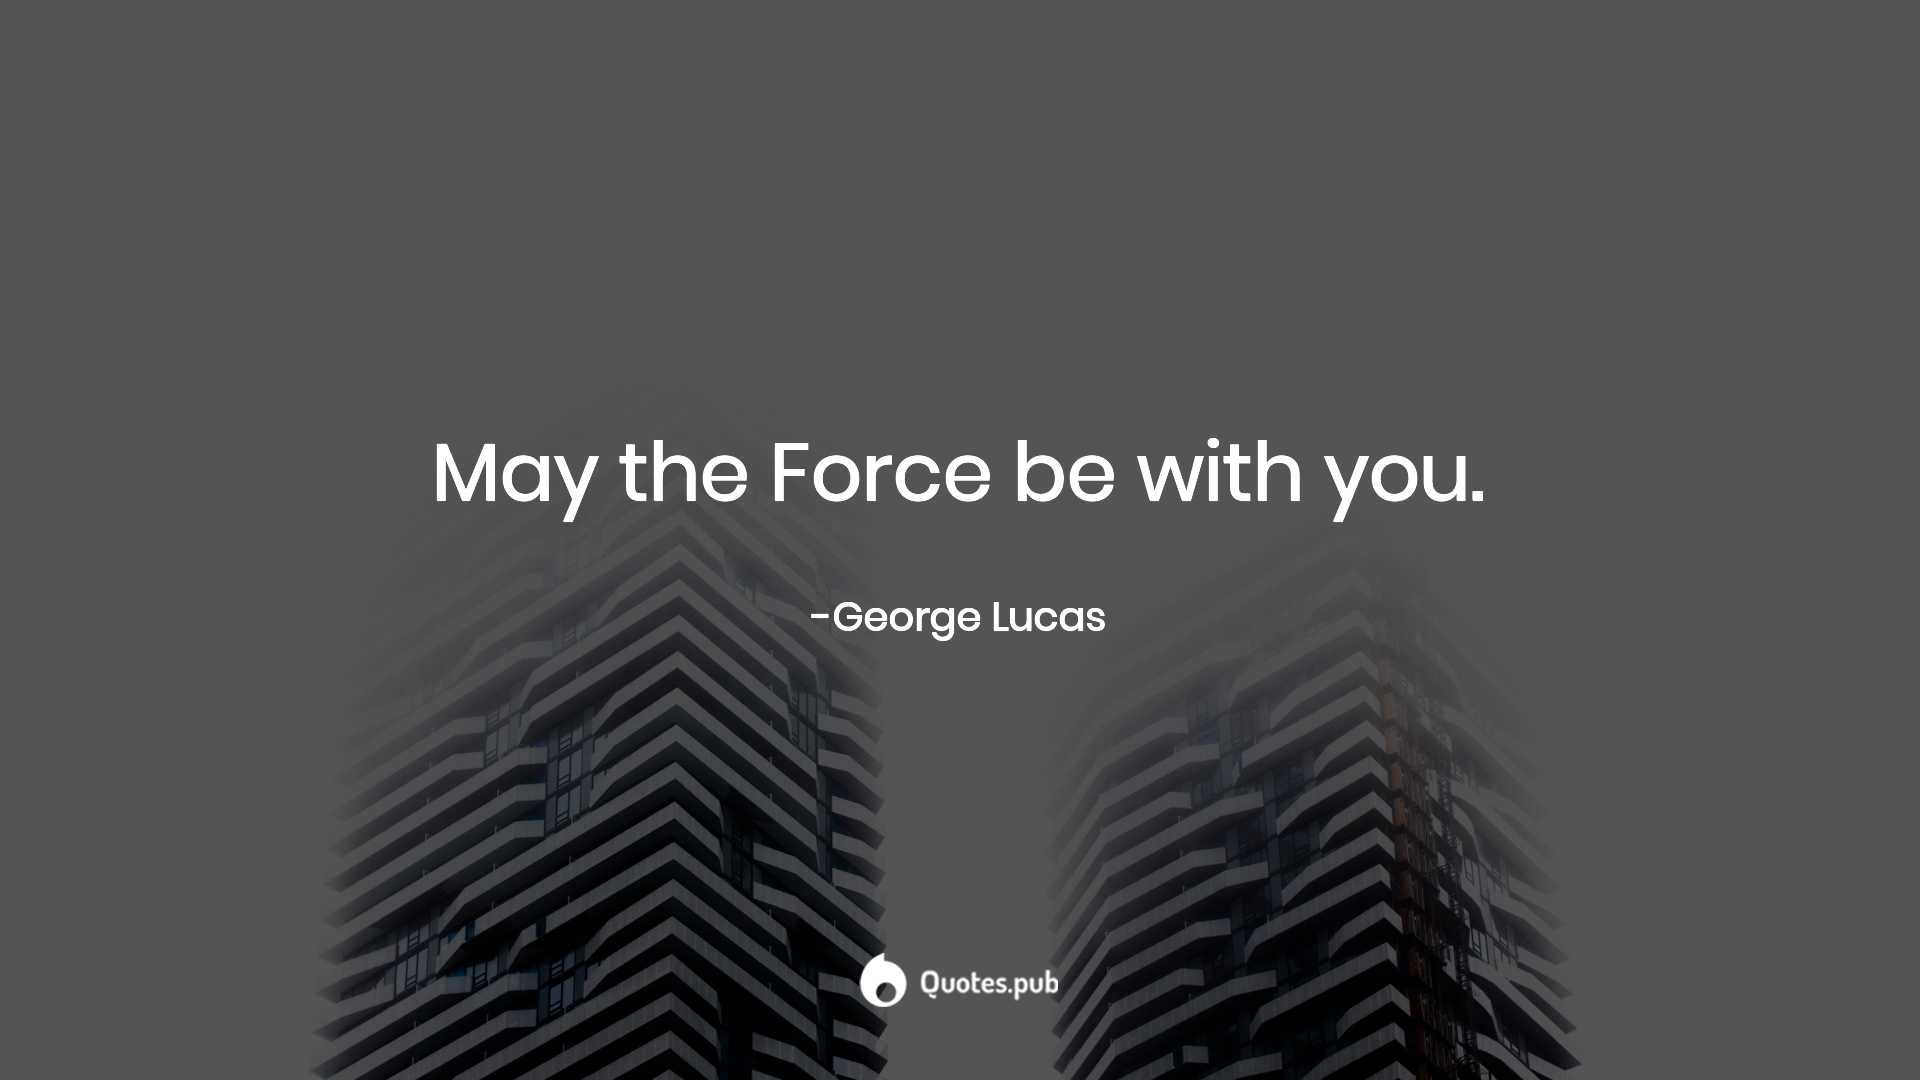 May The Force Be With You George Lucas Quotes Pub